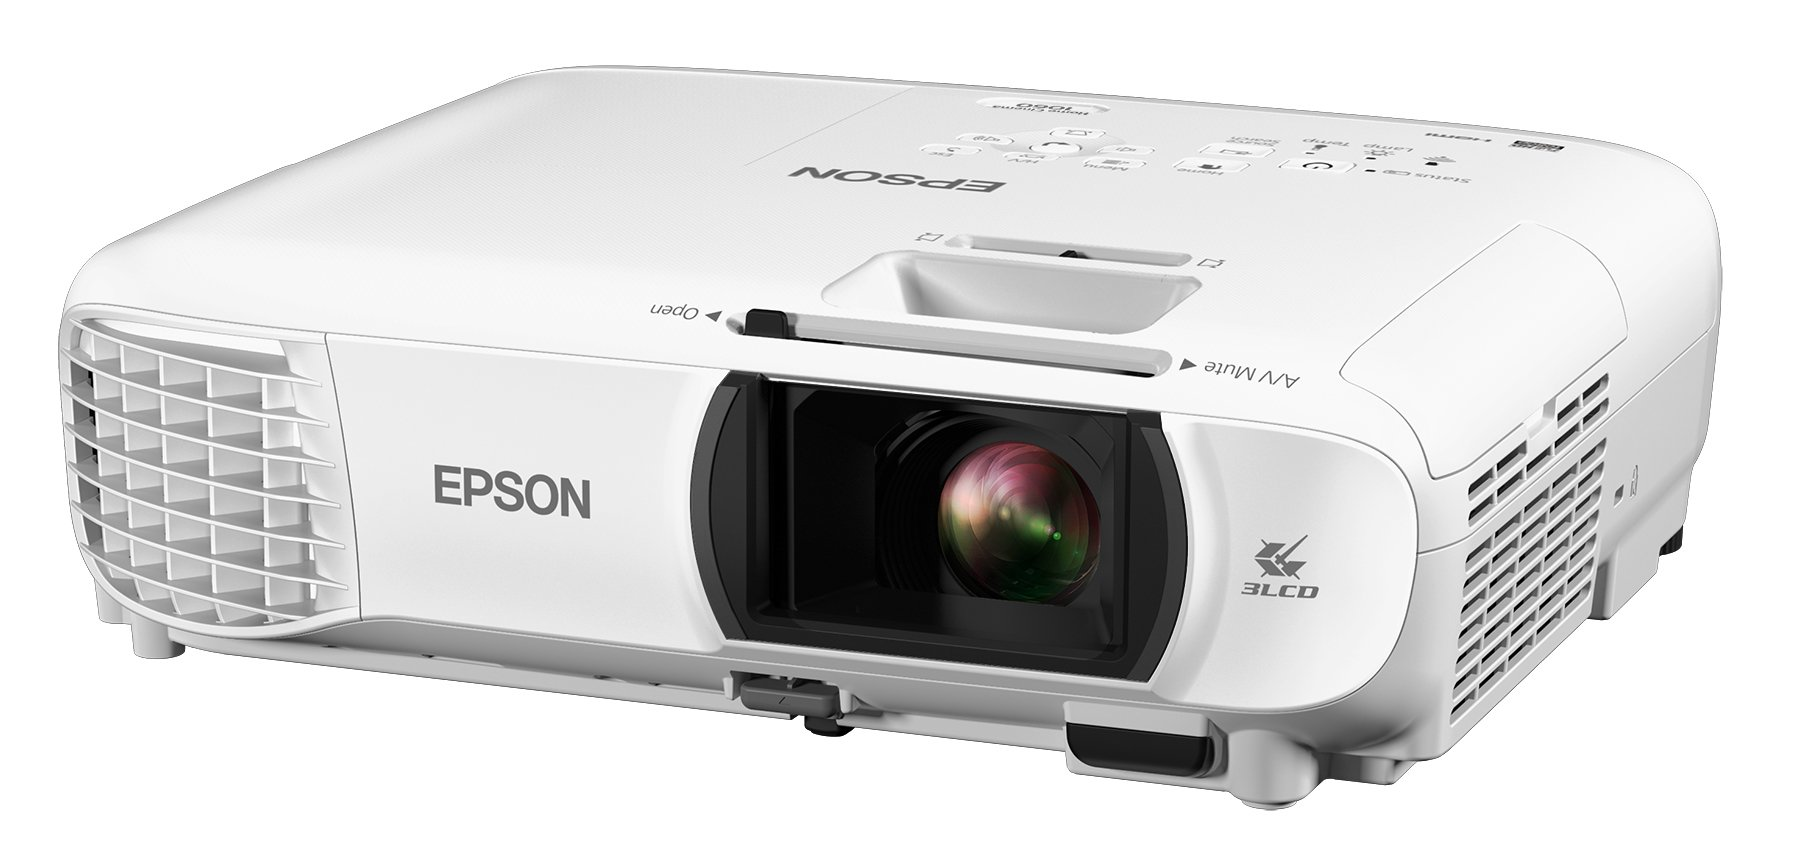 Epson Home Cinema 1060 Full HD 1080p 3,100 lumens Color Brightness (Color Light Output) 3,100 lumens White Brightness (White Light Output) 2X HDMI (1x MHL) Built-in Speakers 3LCD Projector (Renewed) by Epson (Image #1)